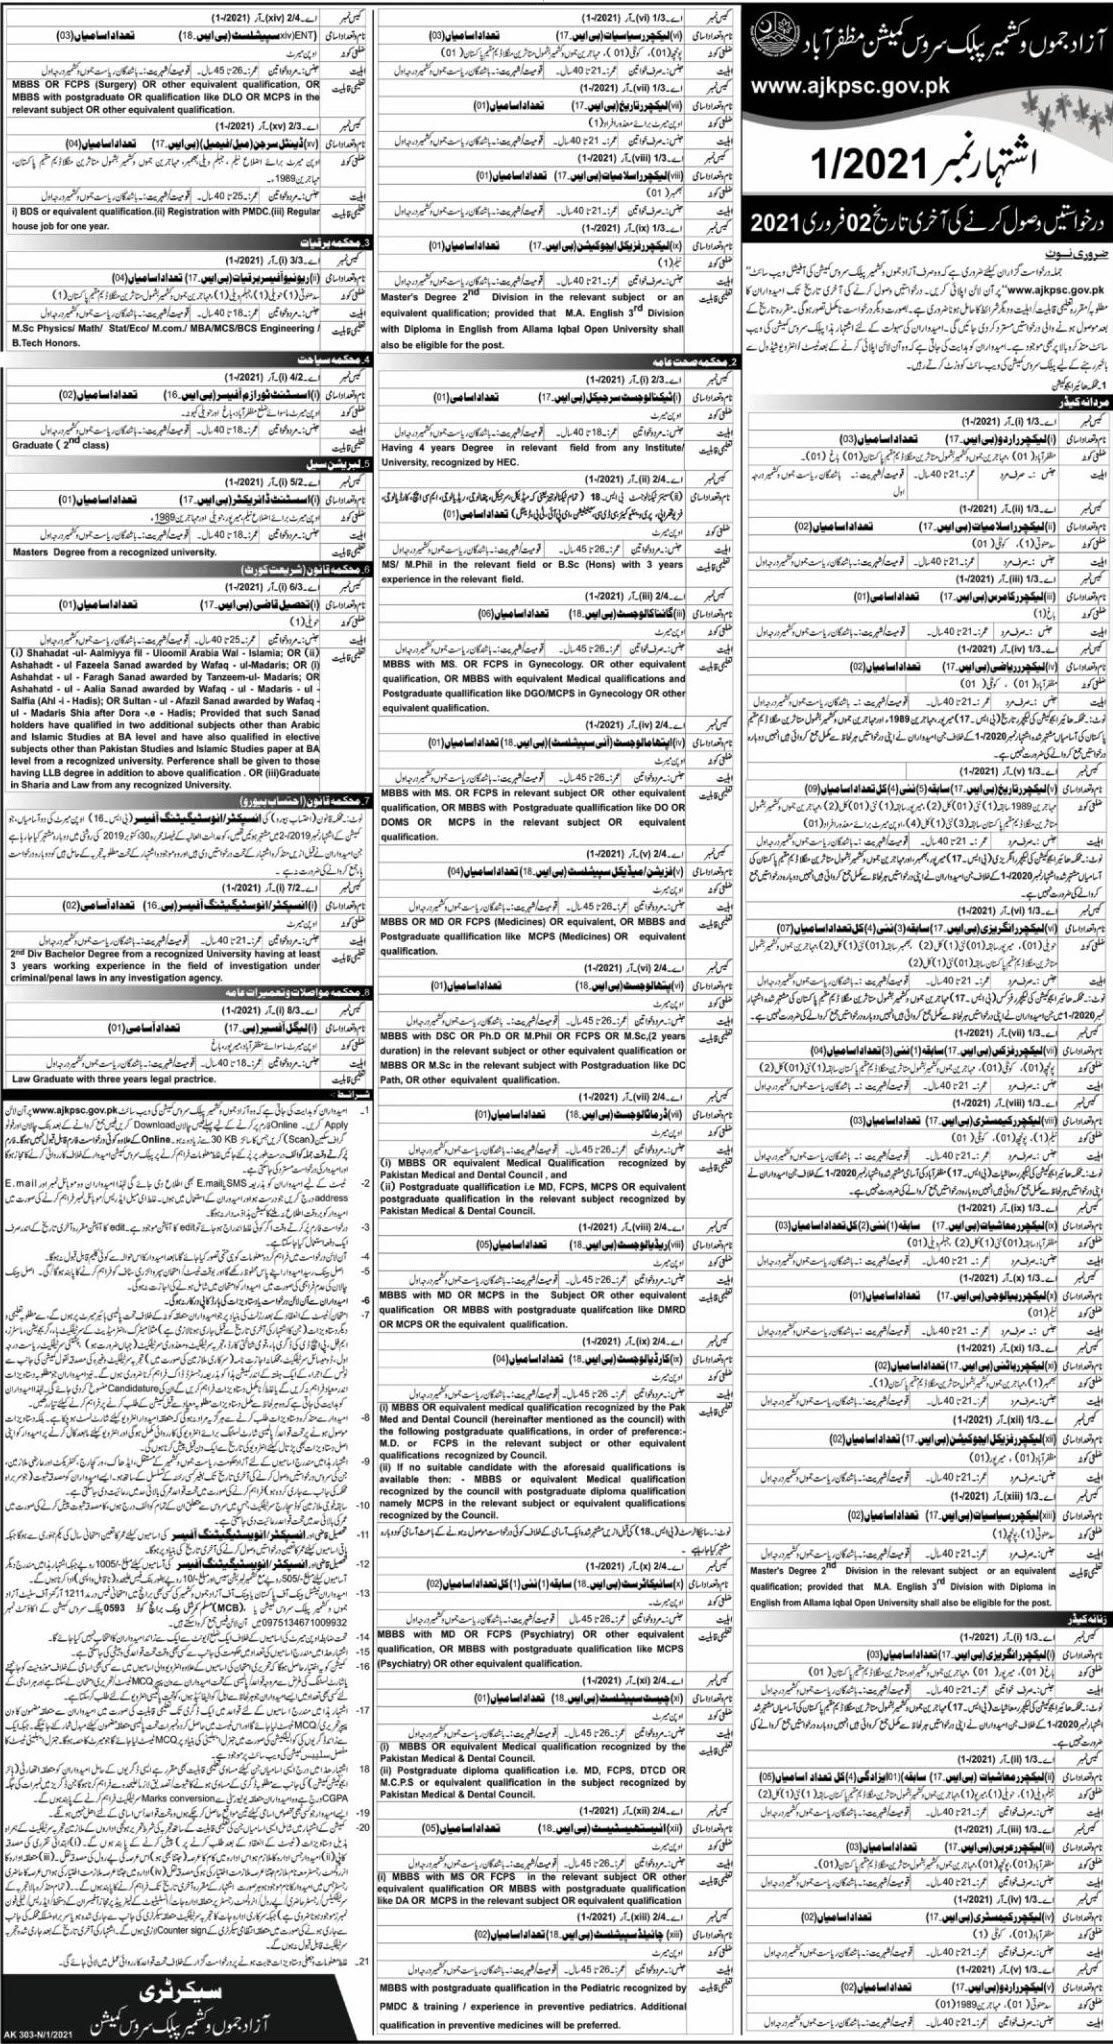 Buildings Division jobs newspaper ad for Legal Officer in Muzaffarabad on 2021-01-12